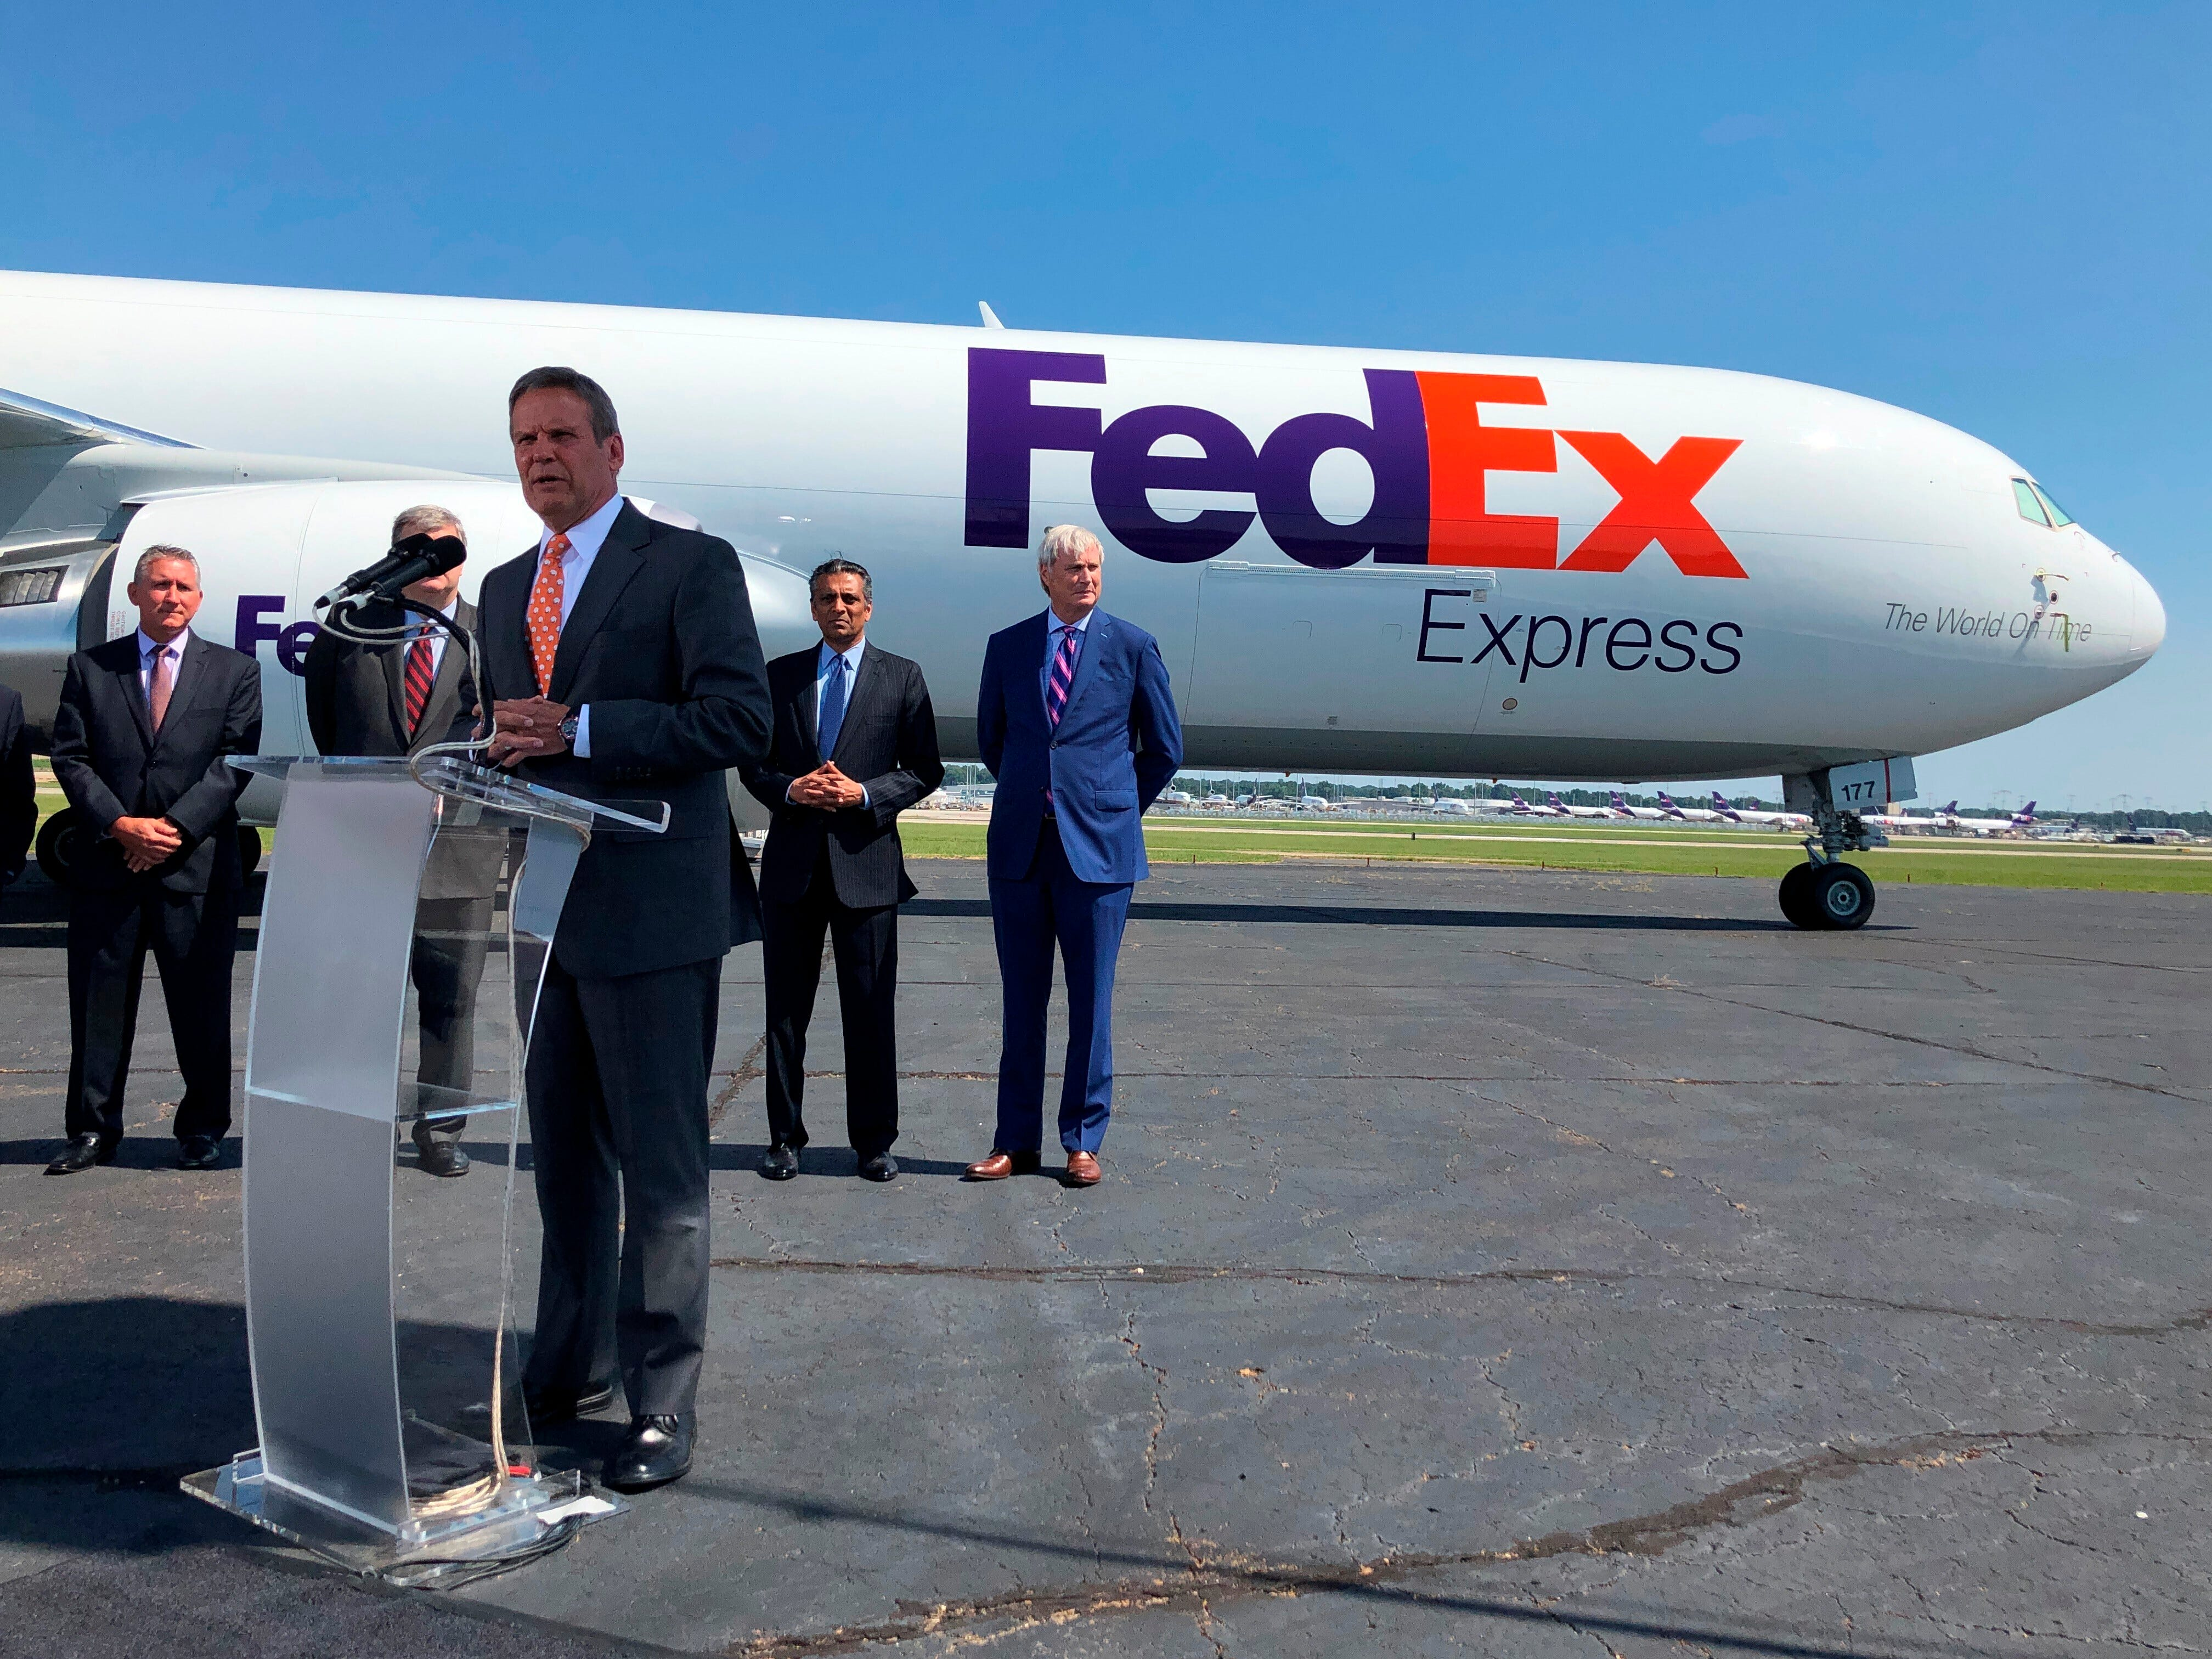 FedEx severs ties, will no longer make ground deliveries